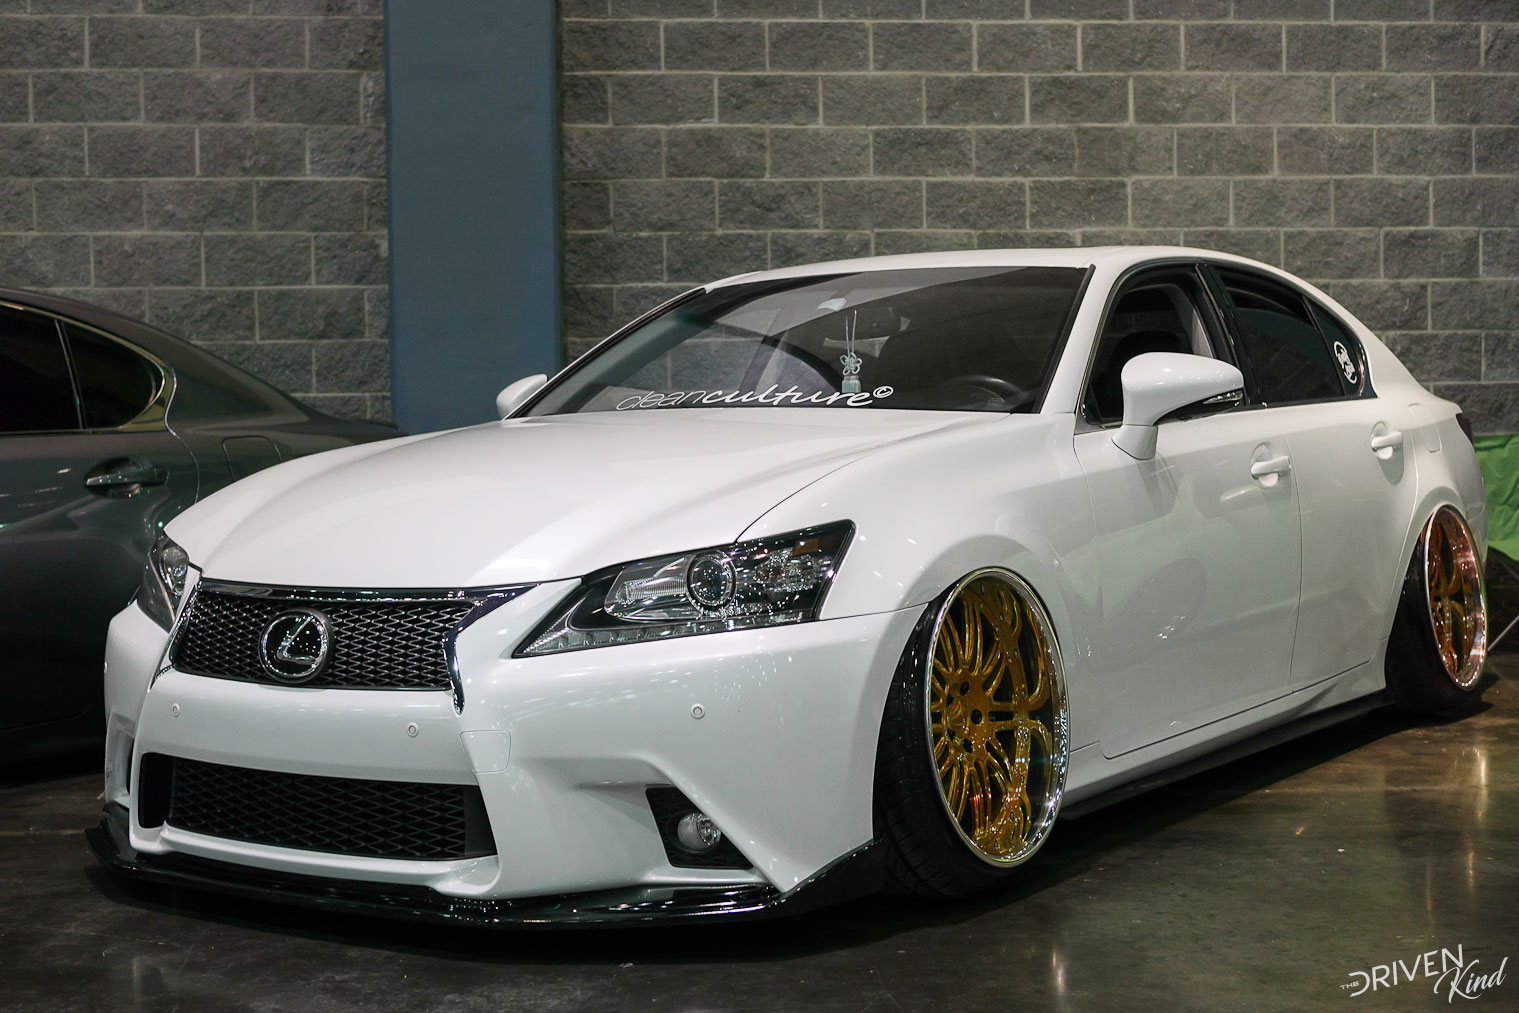 Lexus IS350 STANCENATION FLORIDA PALM BEACH CONVENTION CENTER 2017 Pt. 2 The Driven Kind Coverage